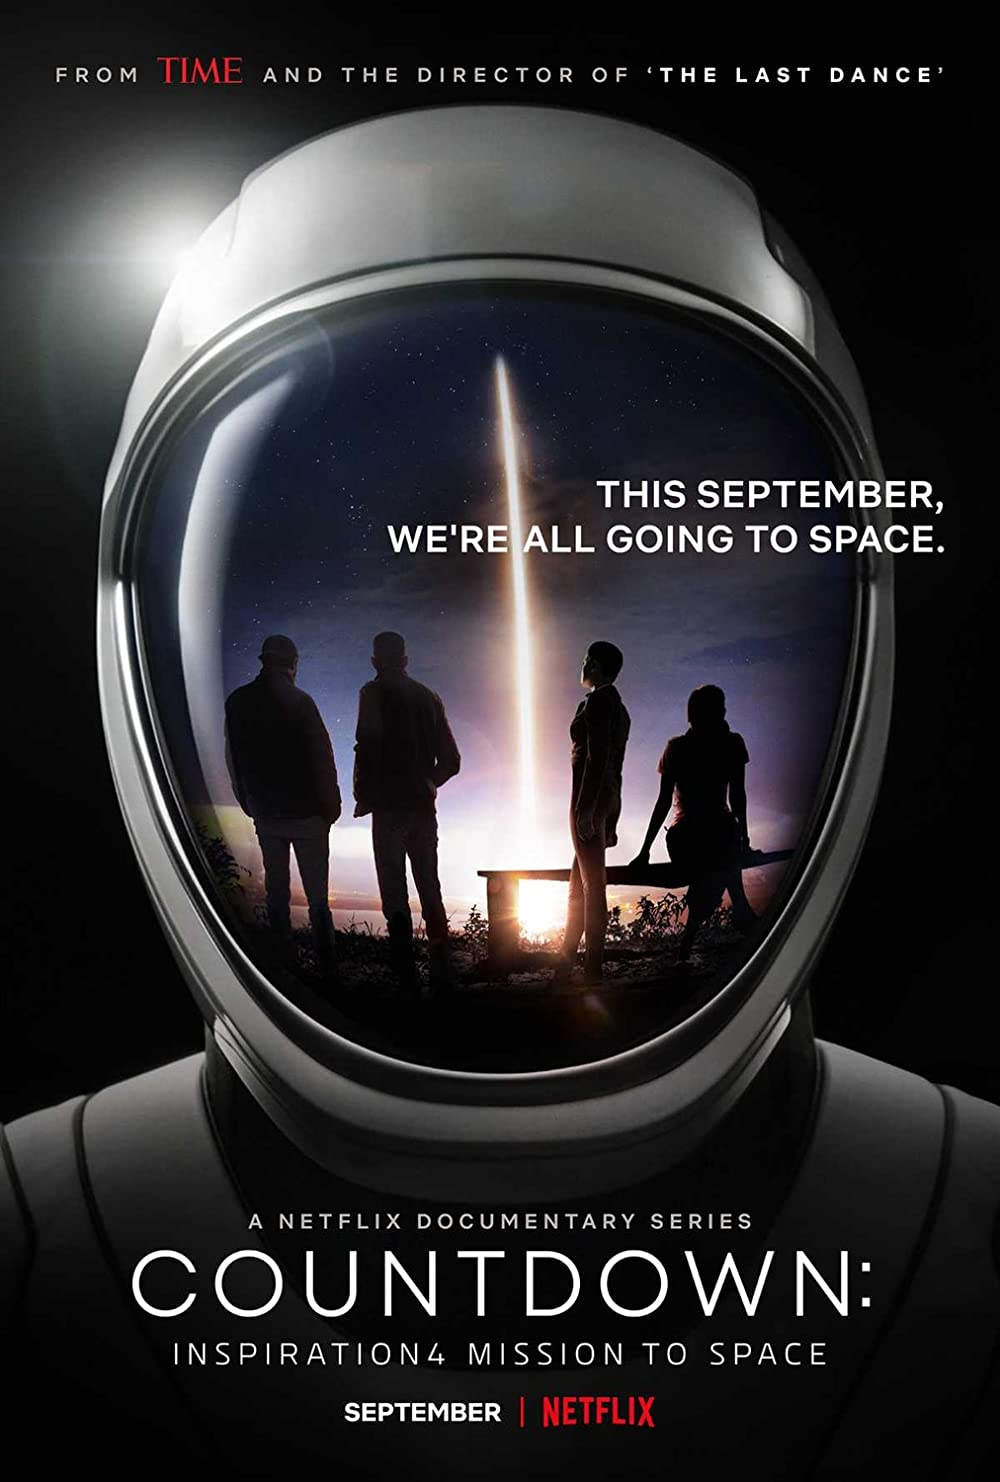 Countdown: Inspiration4 Mission to Space - Season 1 Episode 4